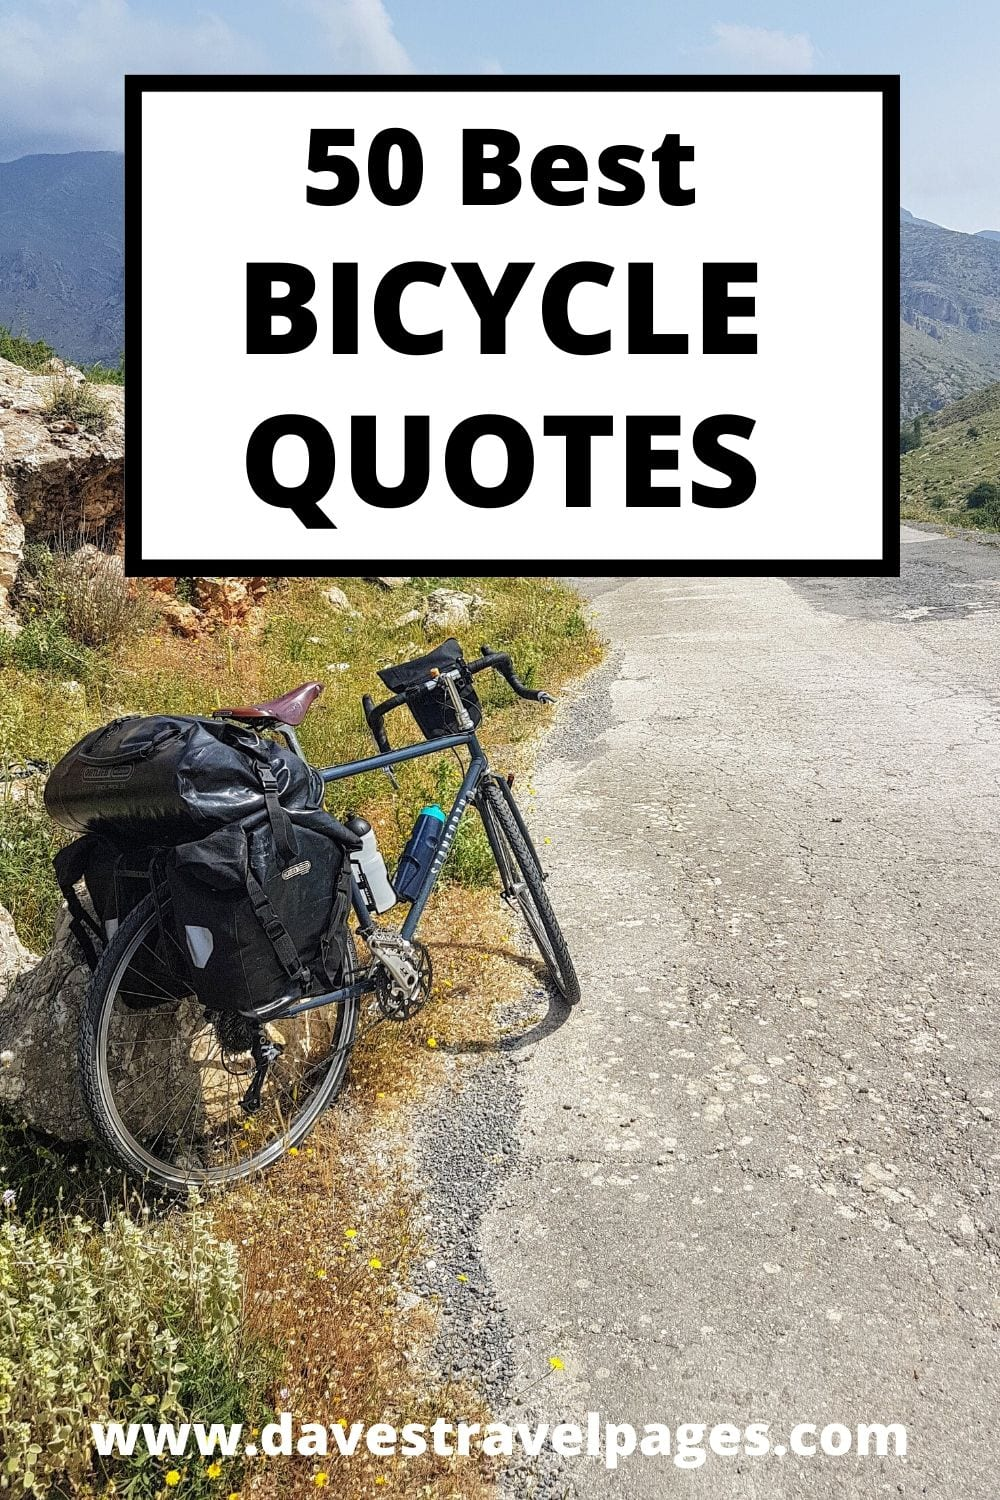 A collection of the 50 Best Bicycle Quotes